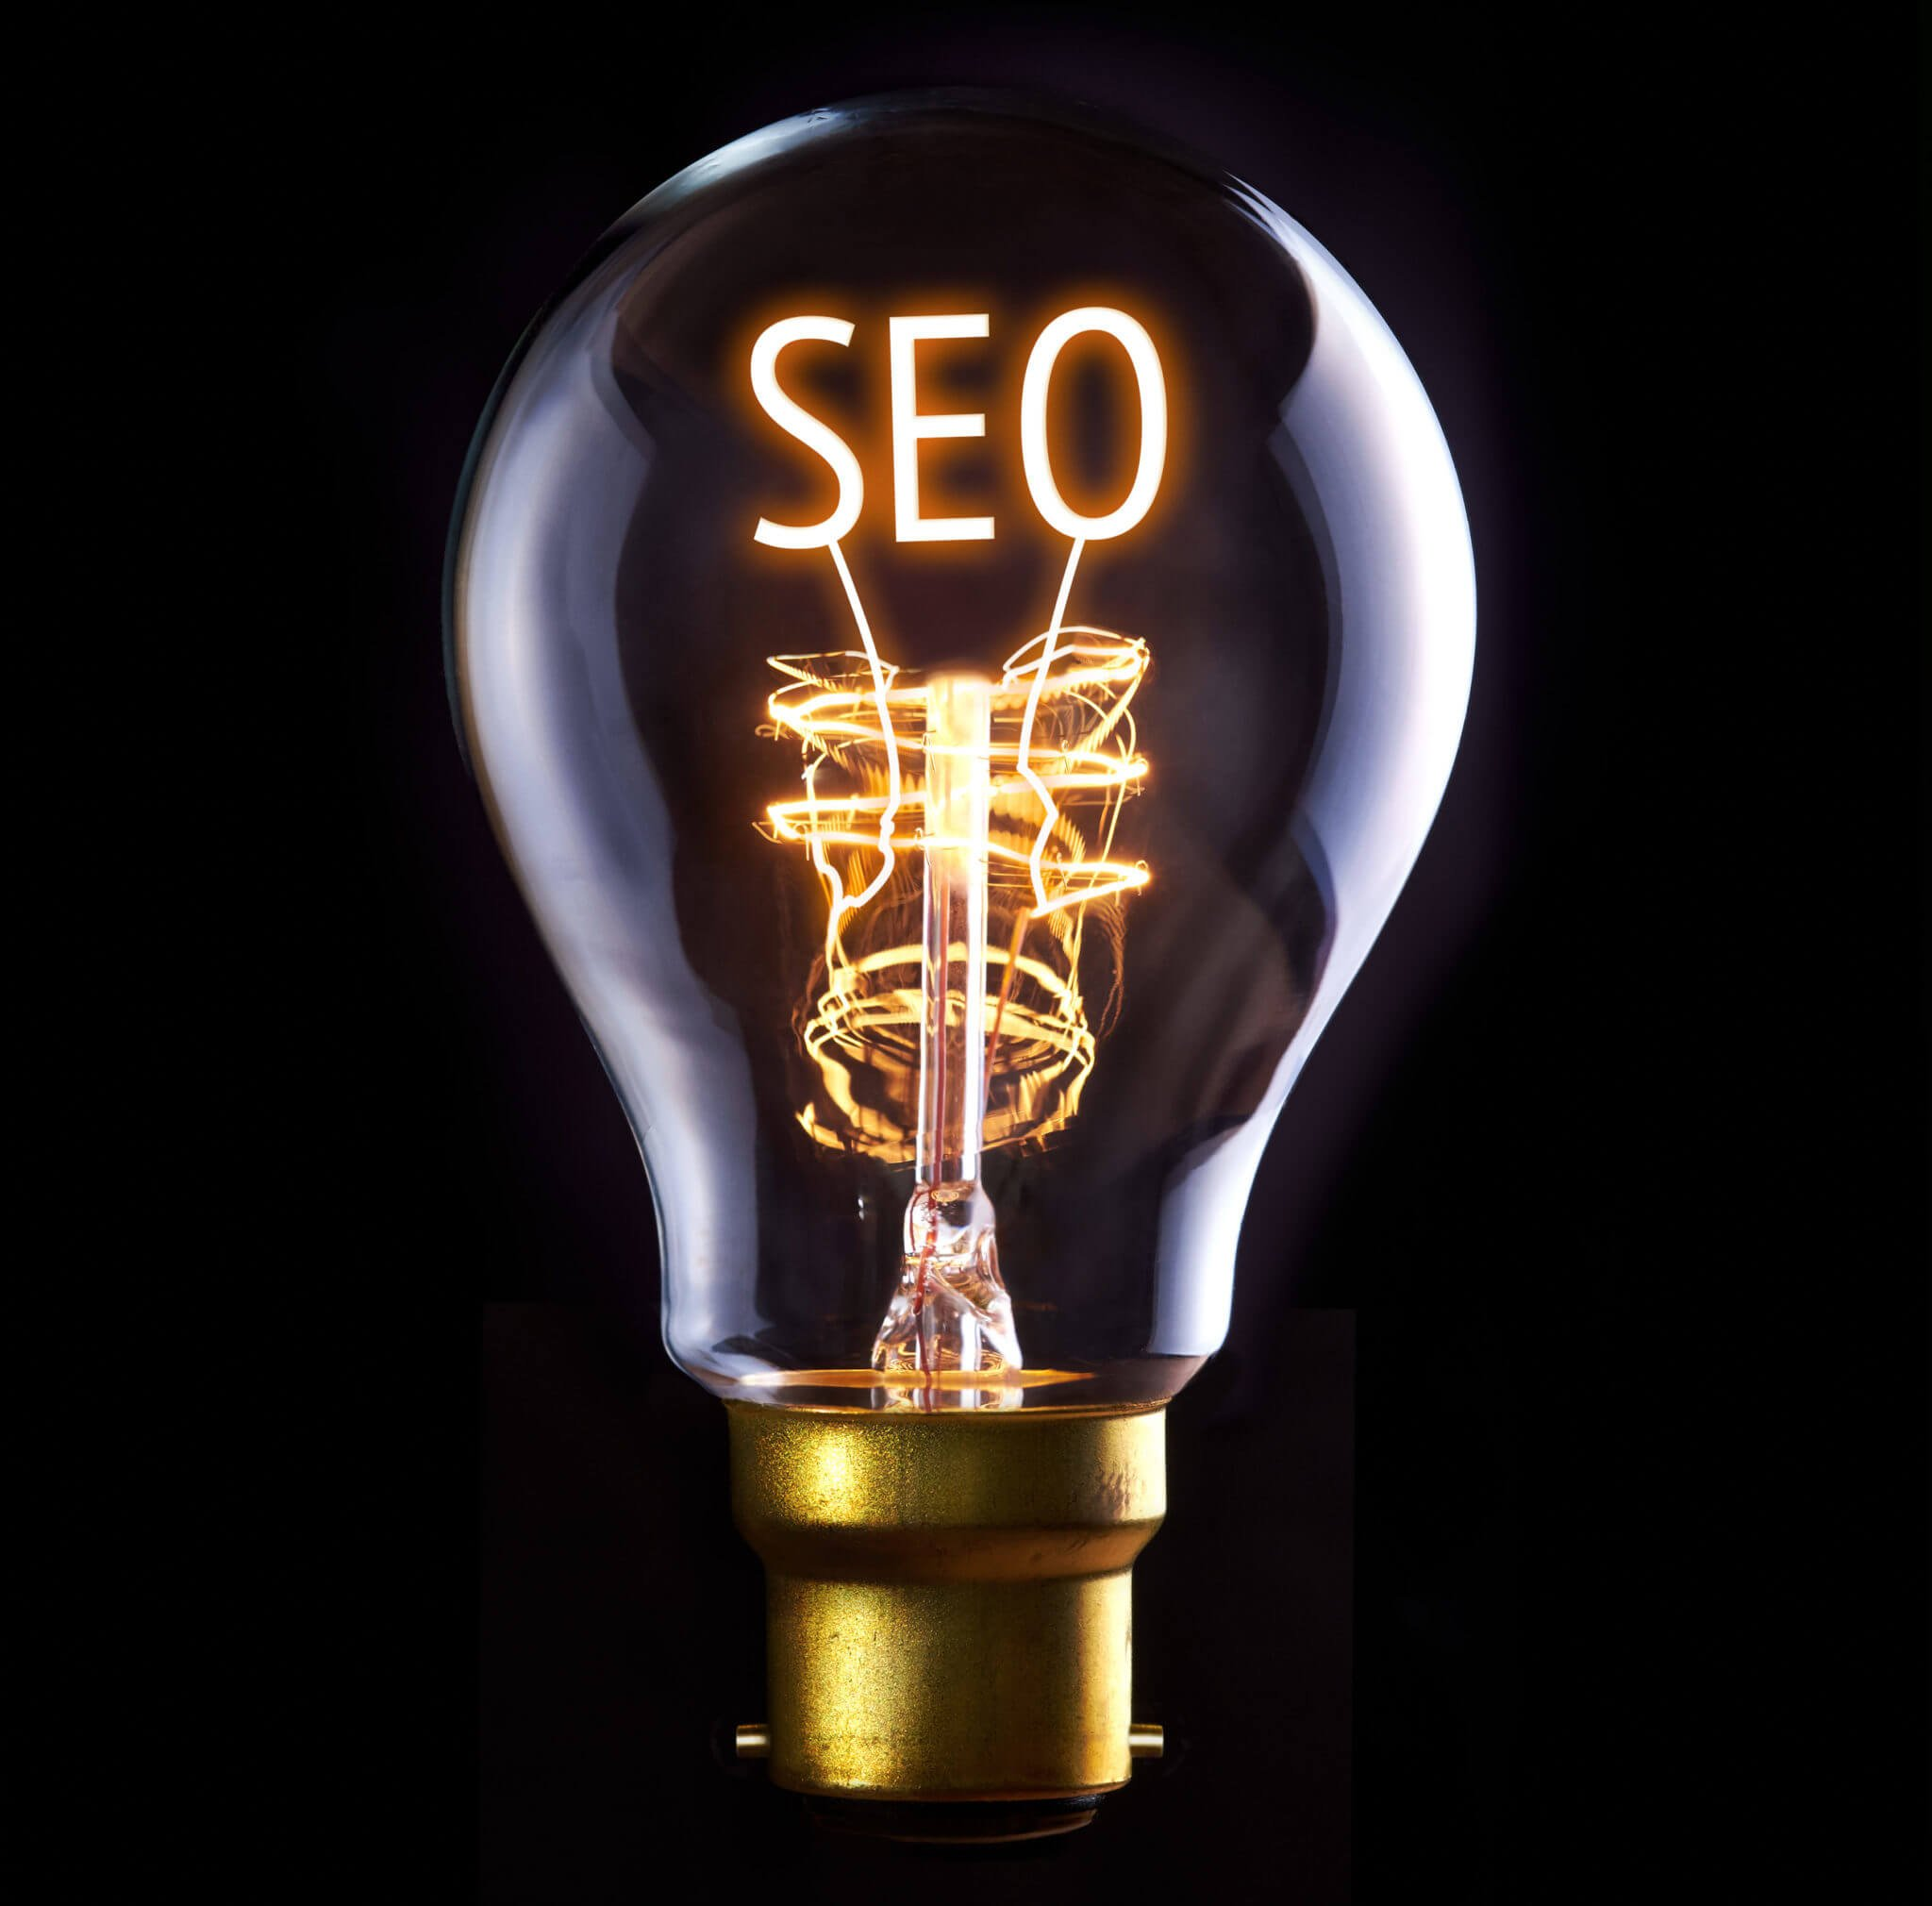 seo letters in a lightbulb